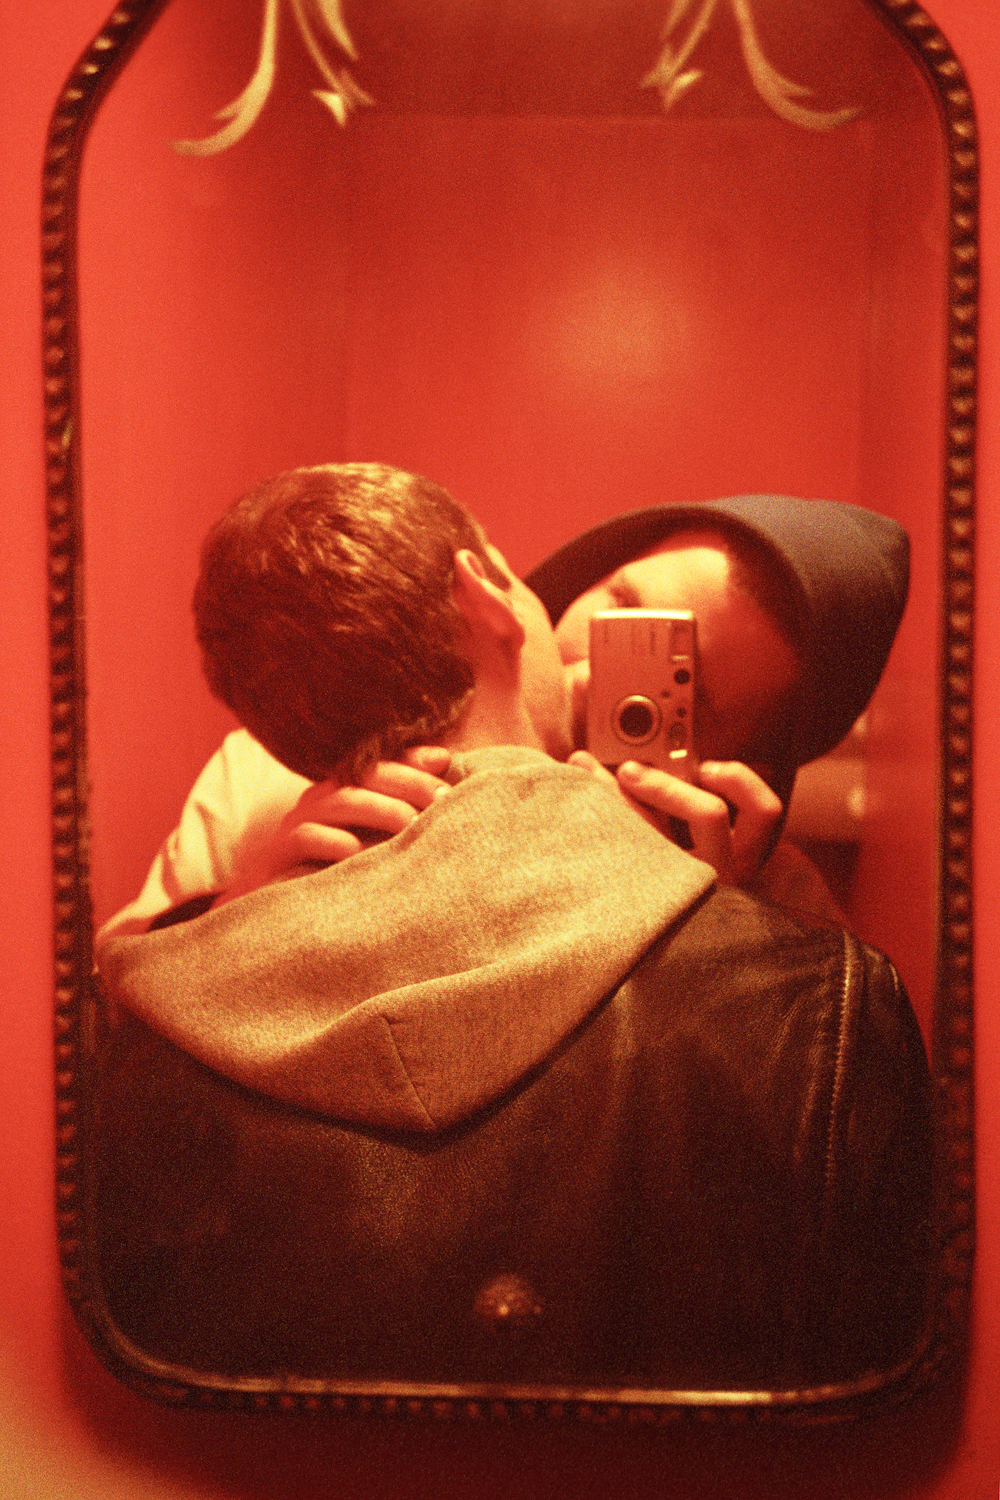 Red Mirror, 1999